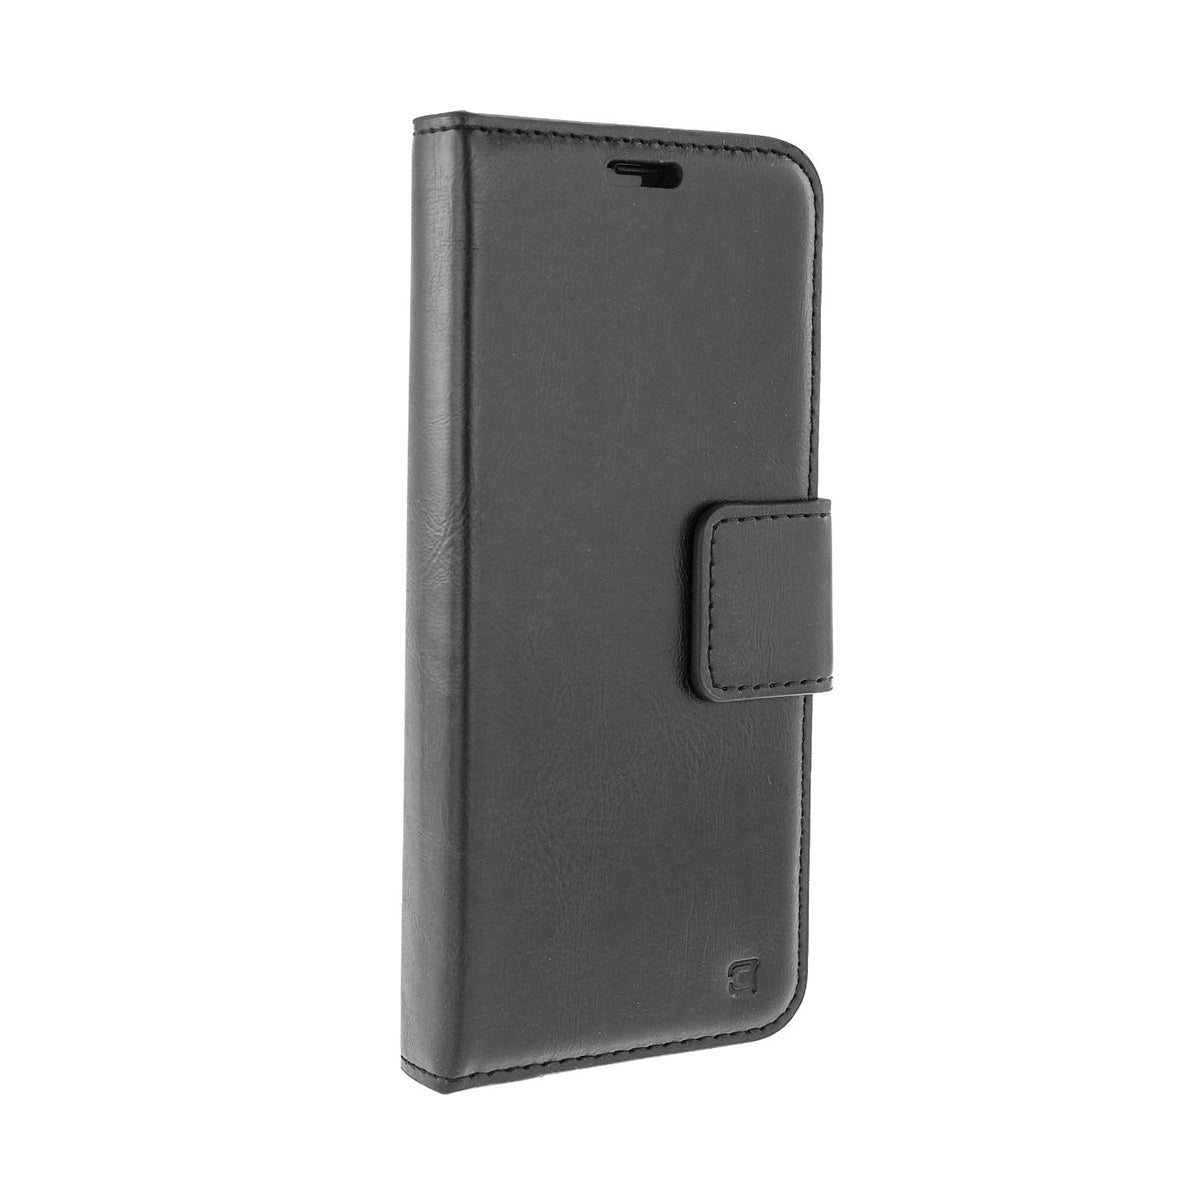 Bond St. Wallet Folio Case - Galaxy A8 (2018) - Black